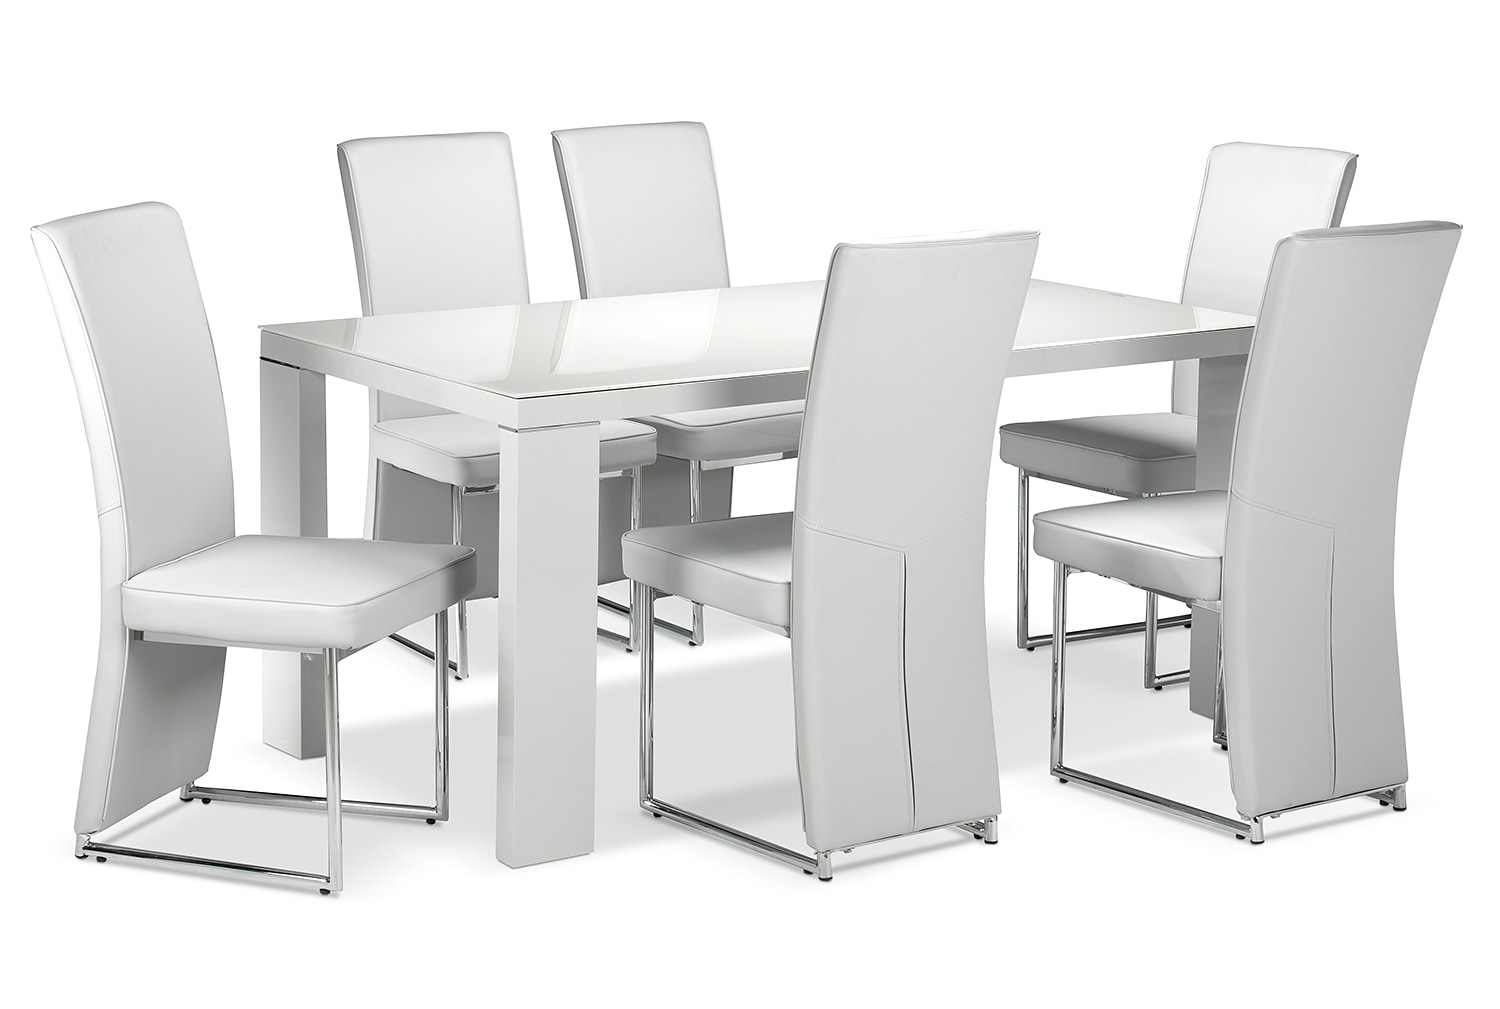 Dining Room Furniture - Bleecker 7 Pc. Dining Room Package - Light Grey